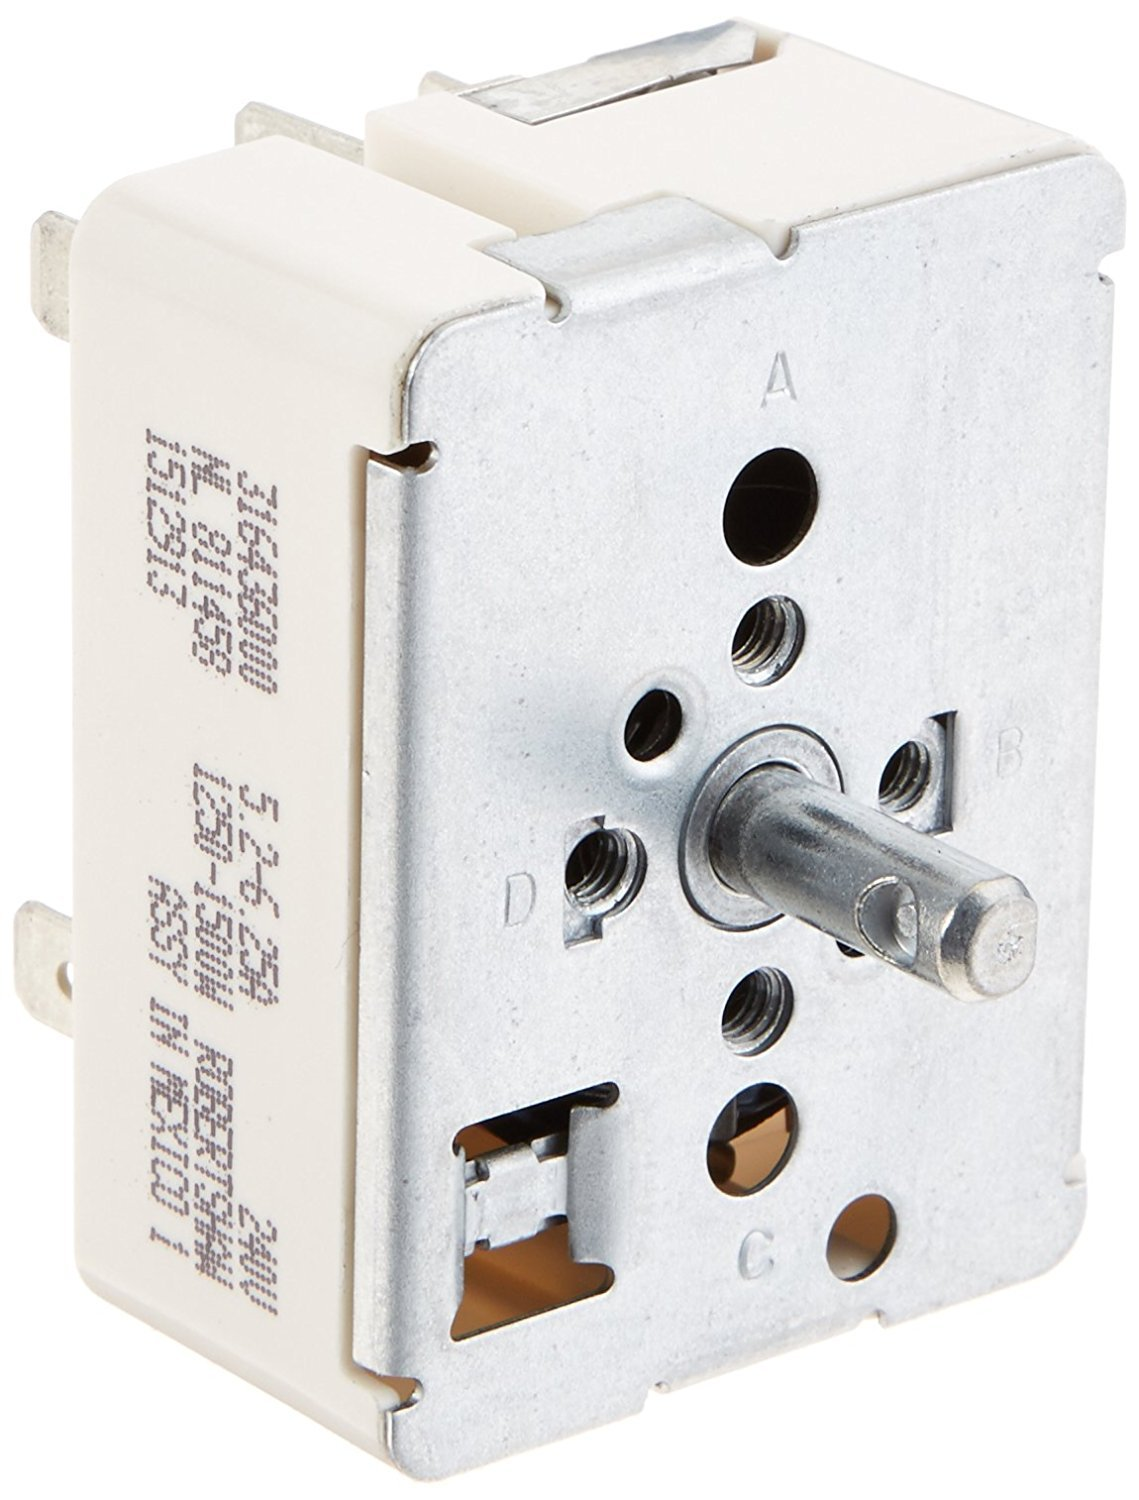 Kenmore / Sears 79094124401 Burner Switch Replacement